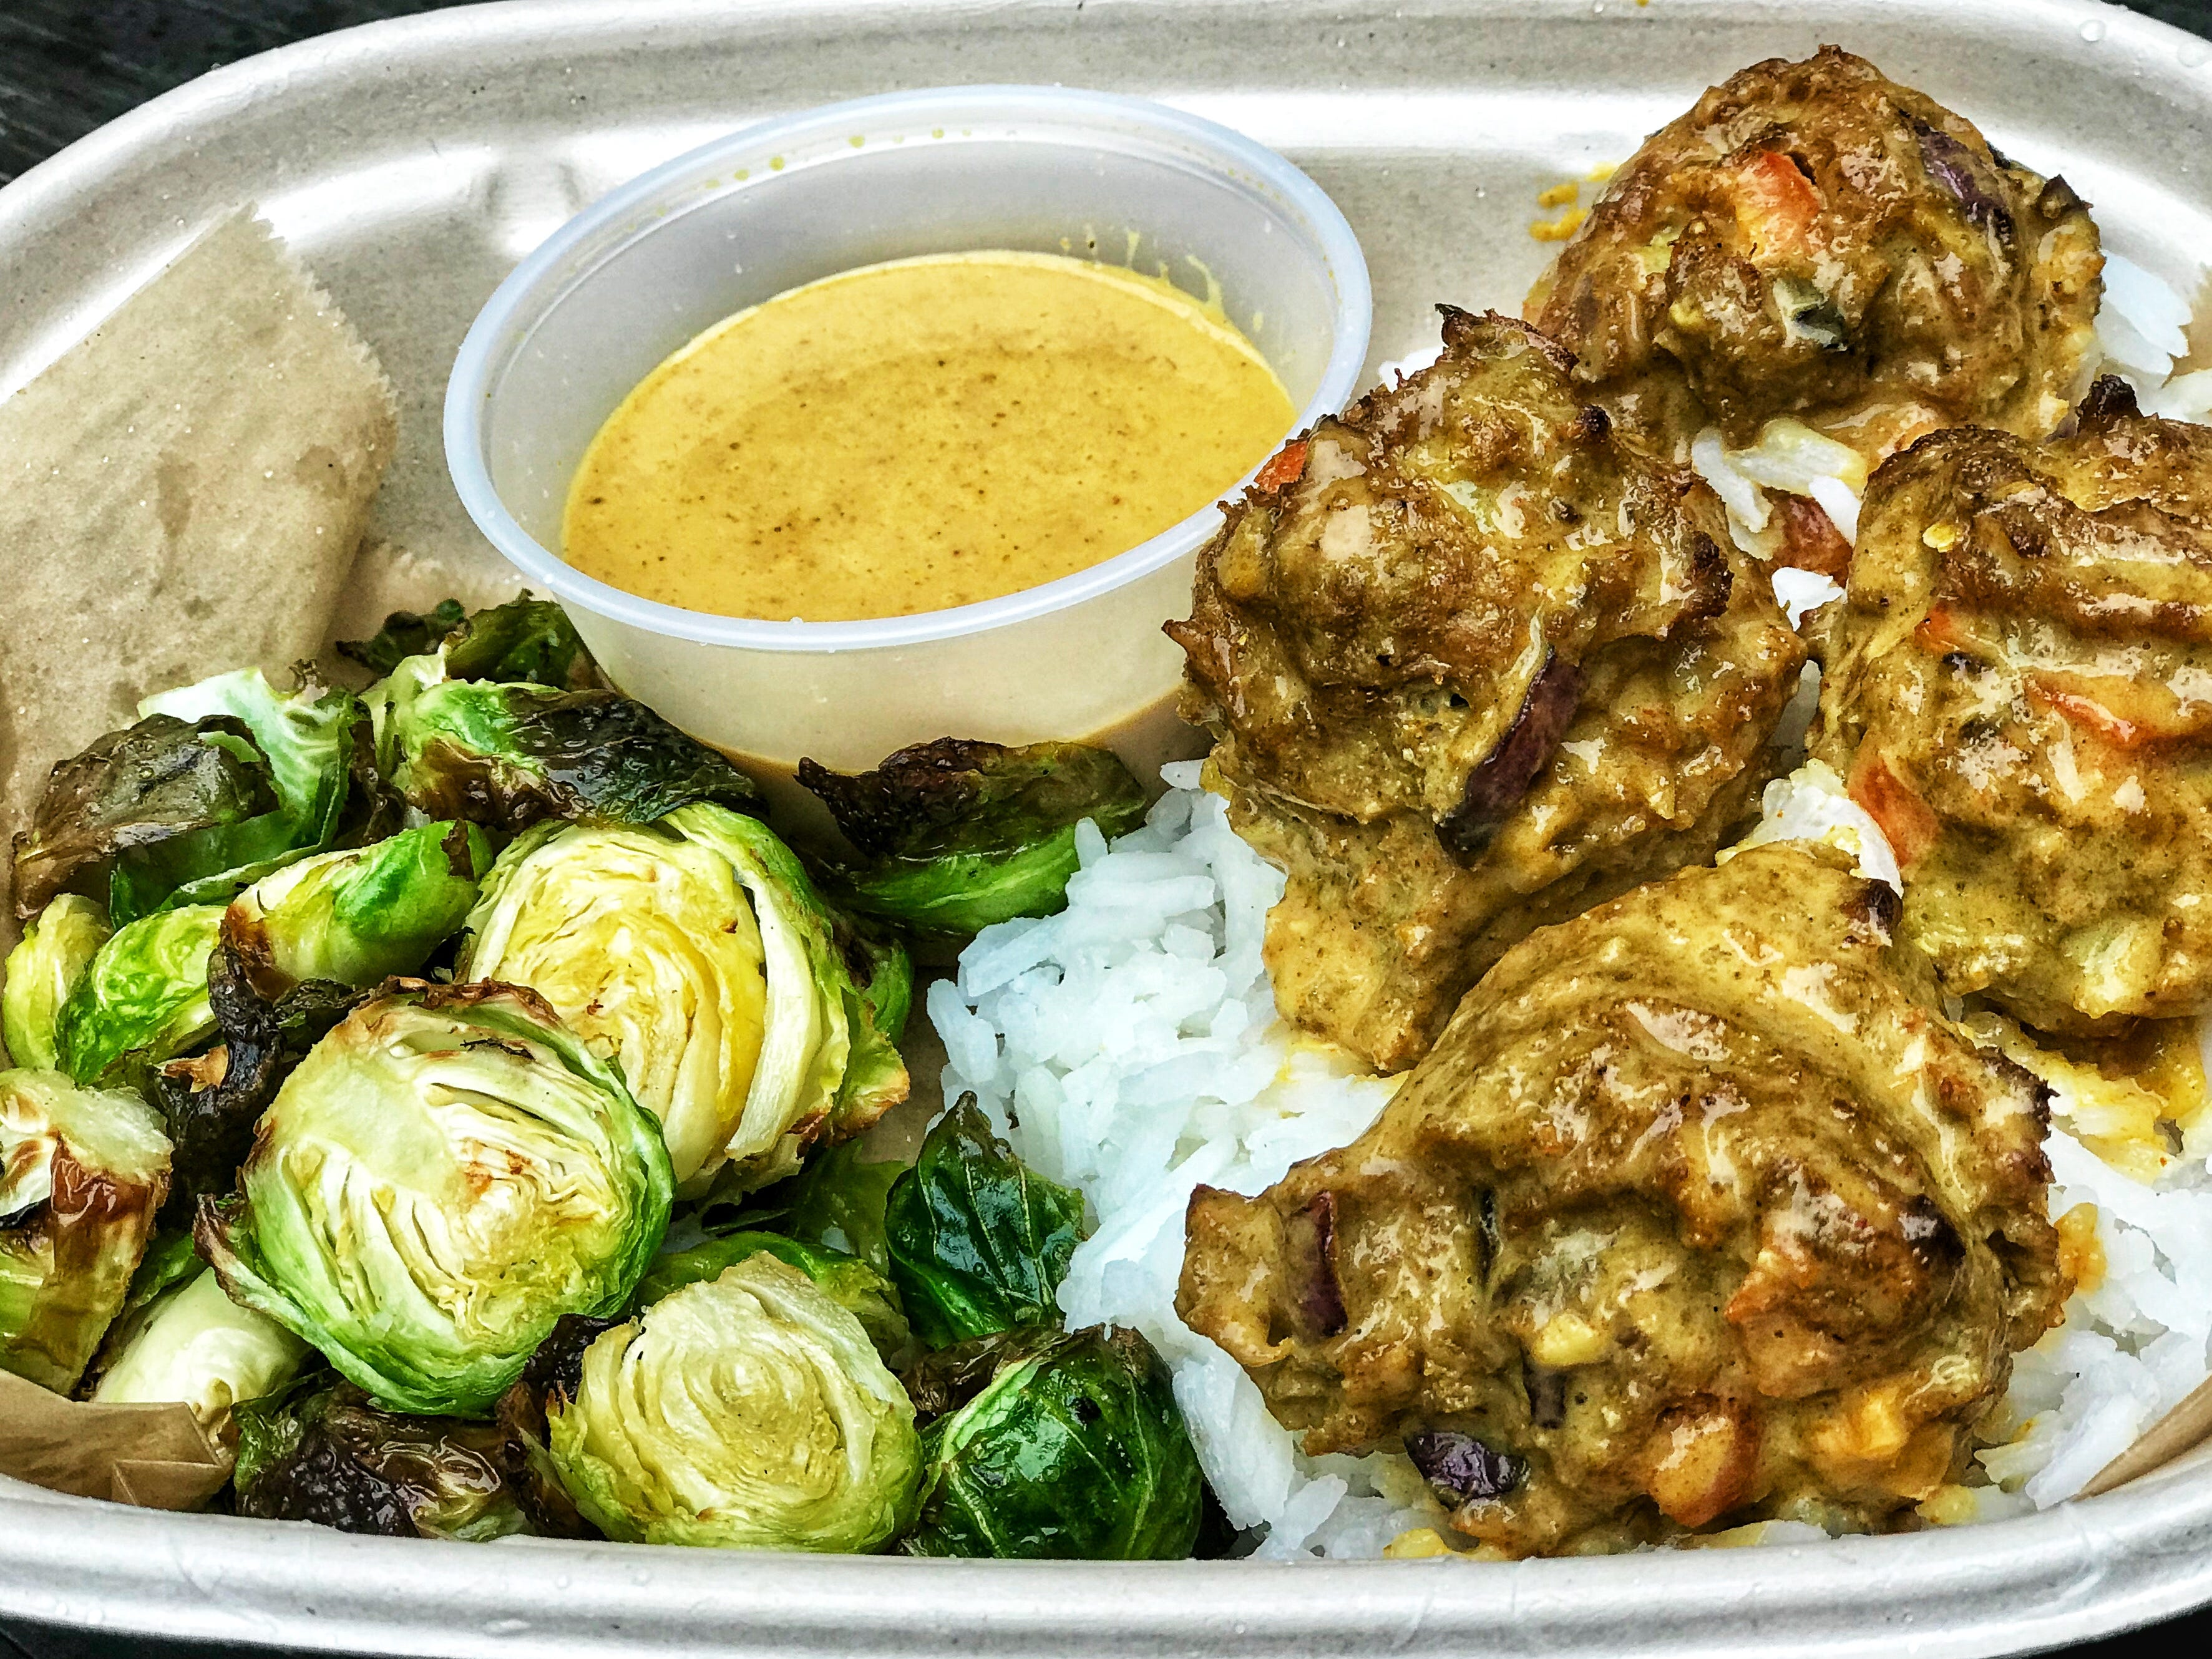 Fittest Kitchen has launched a meal prep service, which includes menu items like the Thai turkey meatballs with rice and Brussels sprouts.